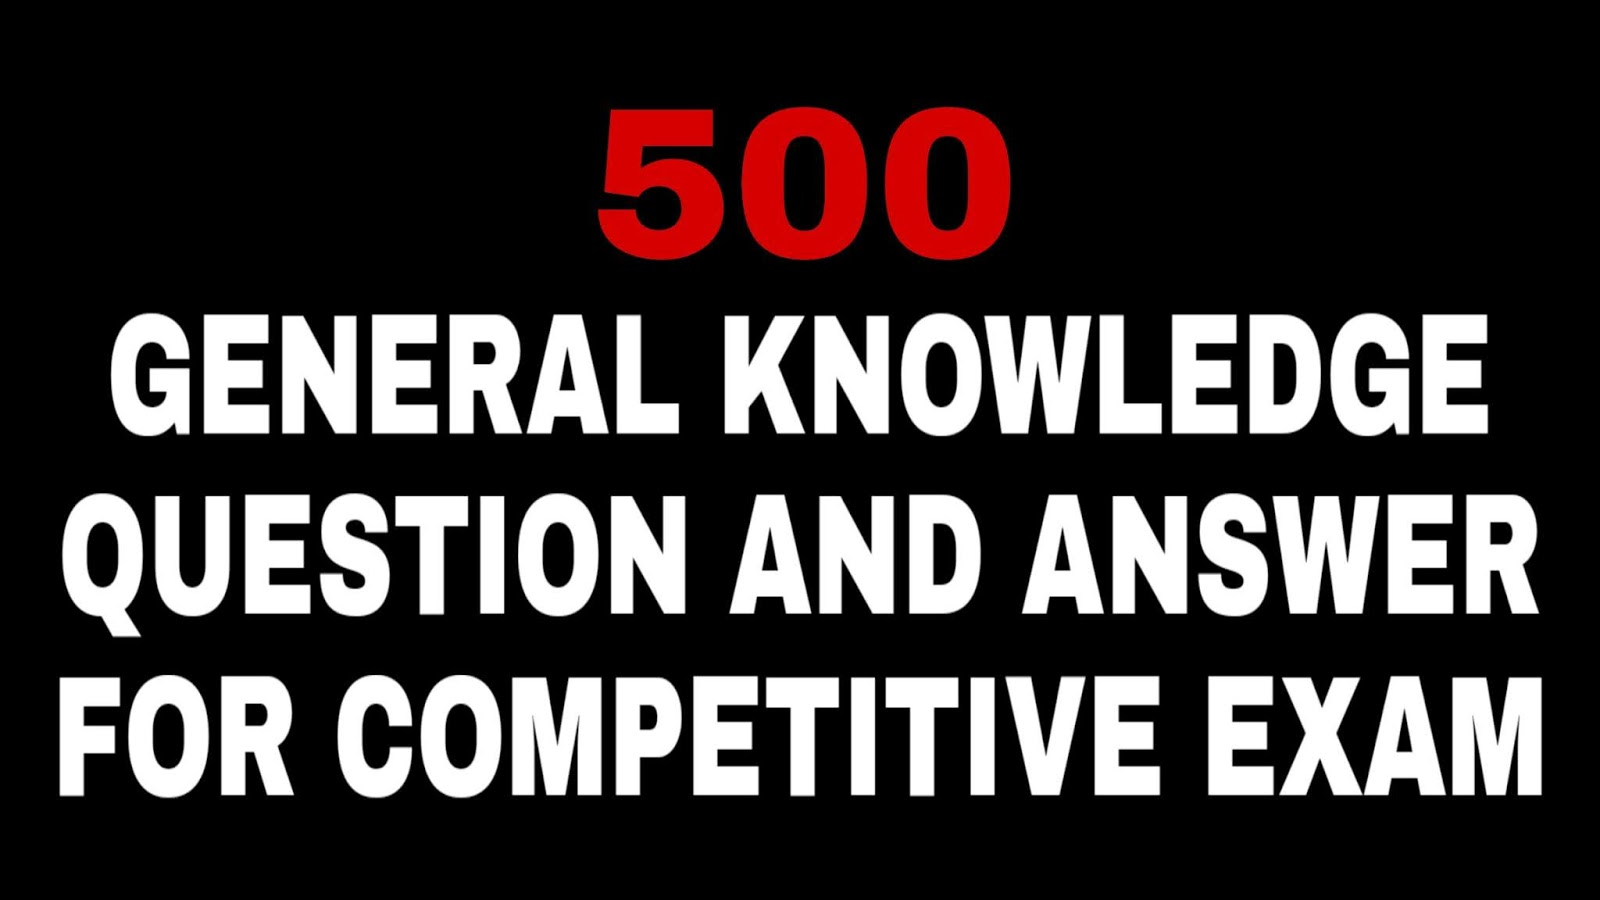 general knowledge questions and answers for competitive exams, general knowledge questions and answers for competitive exams in hindi, general knowledge questions and answers for competitive exams 2019, general knowledge questions and answers for all competitive exams, basic general knowledge questions and answers for competitive exams, easy general knowledge questions and answers for competitive exams, general knowledge questions and answers for competitive exams hindi, general knowledge questions and answers for competitive exams online